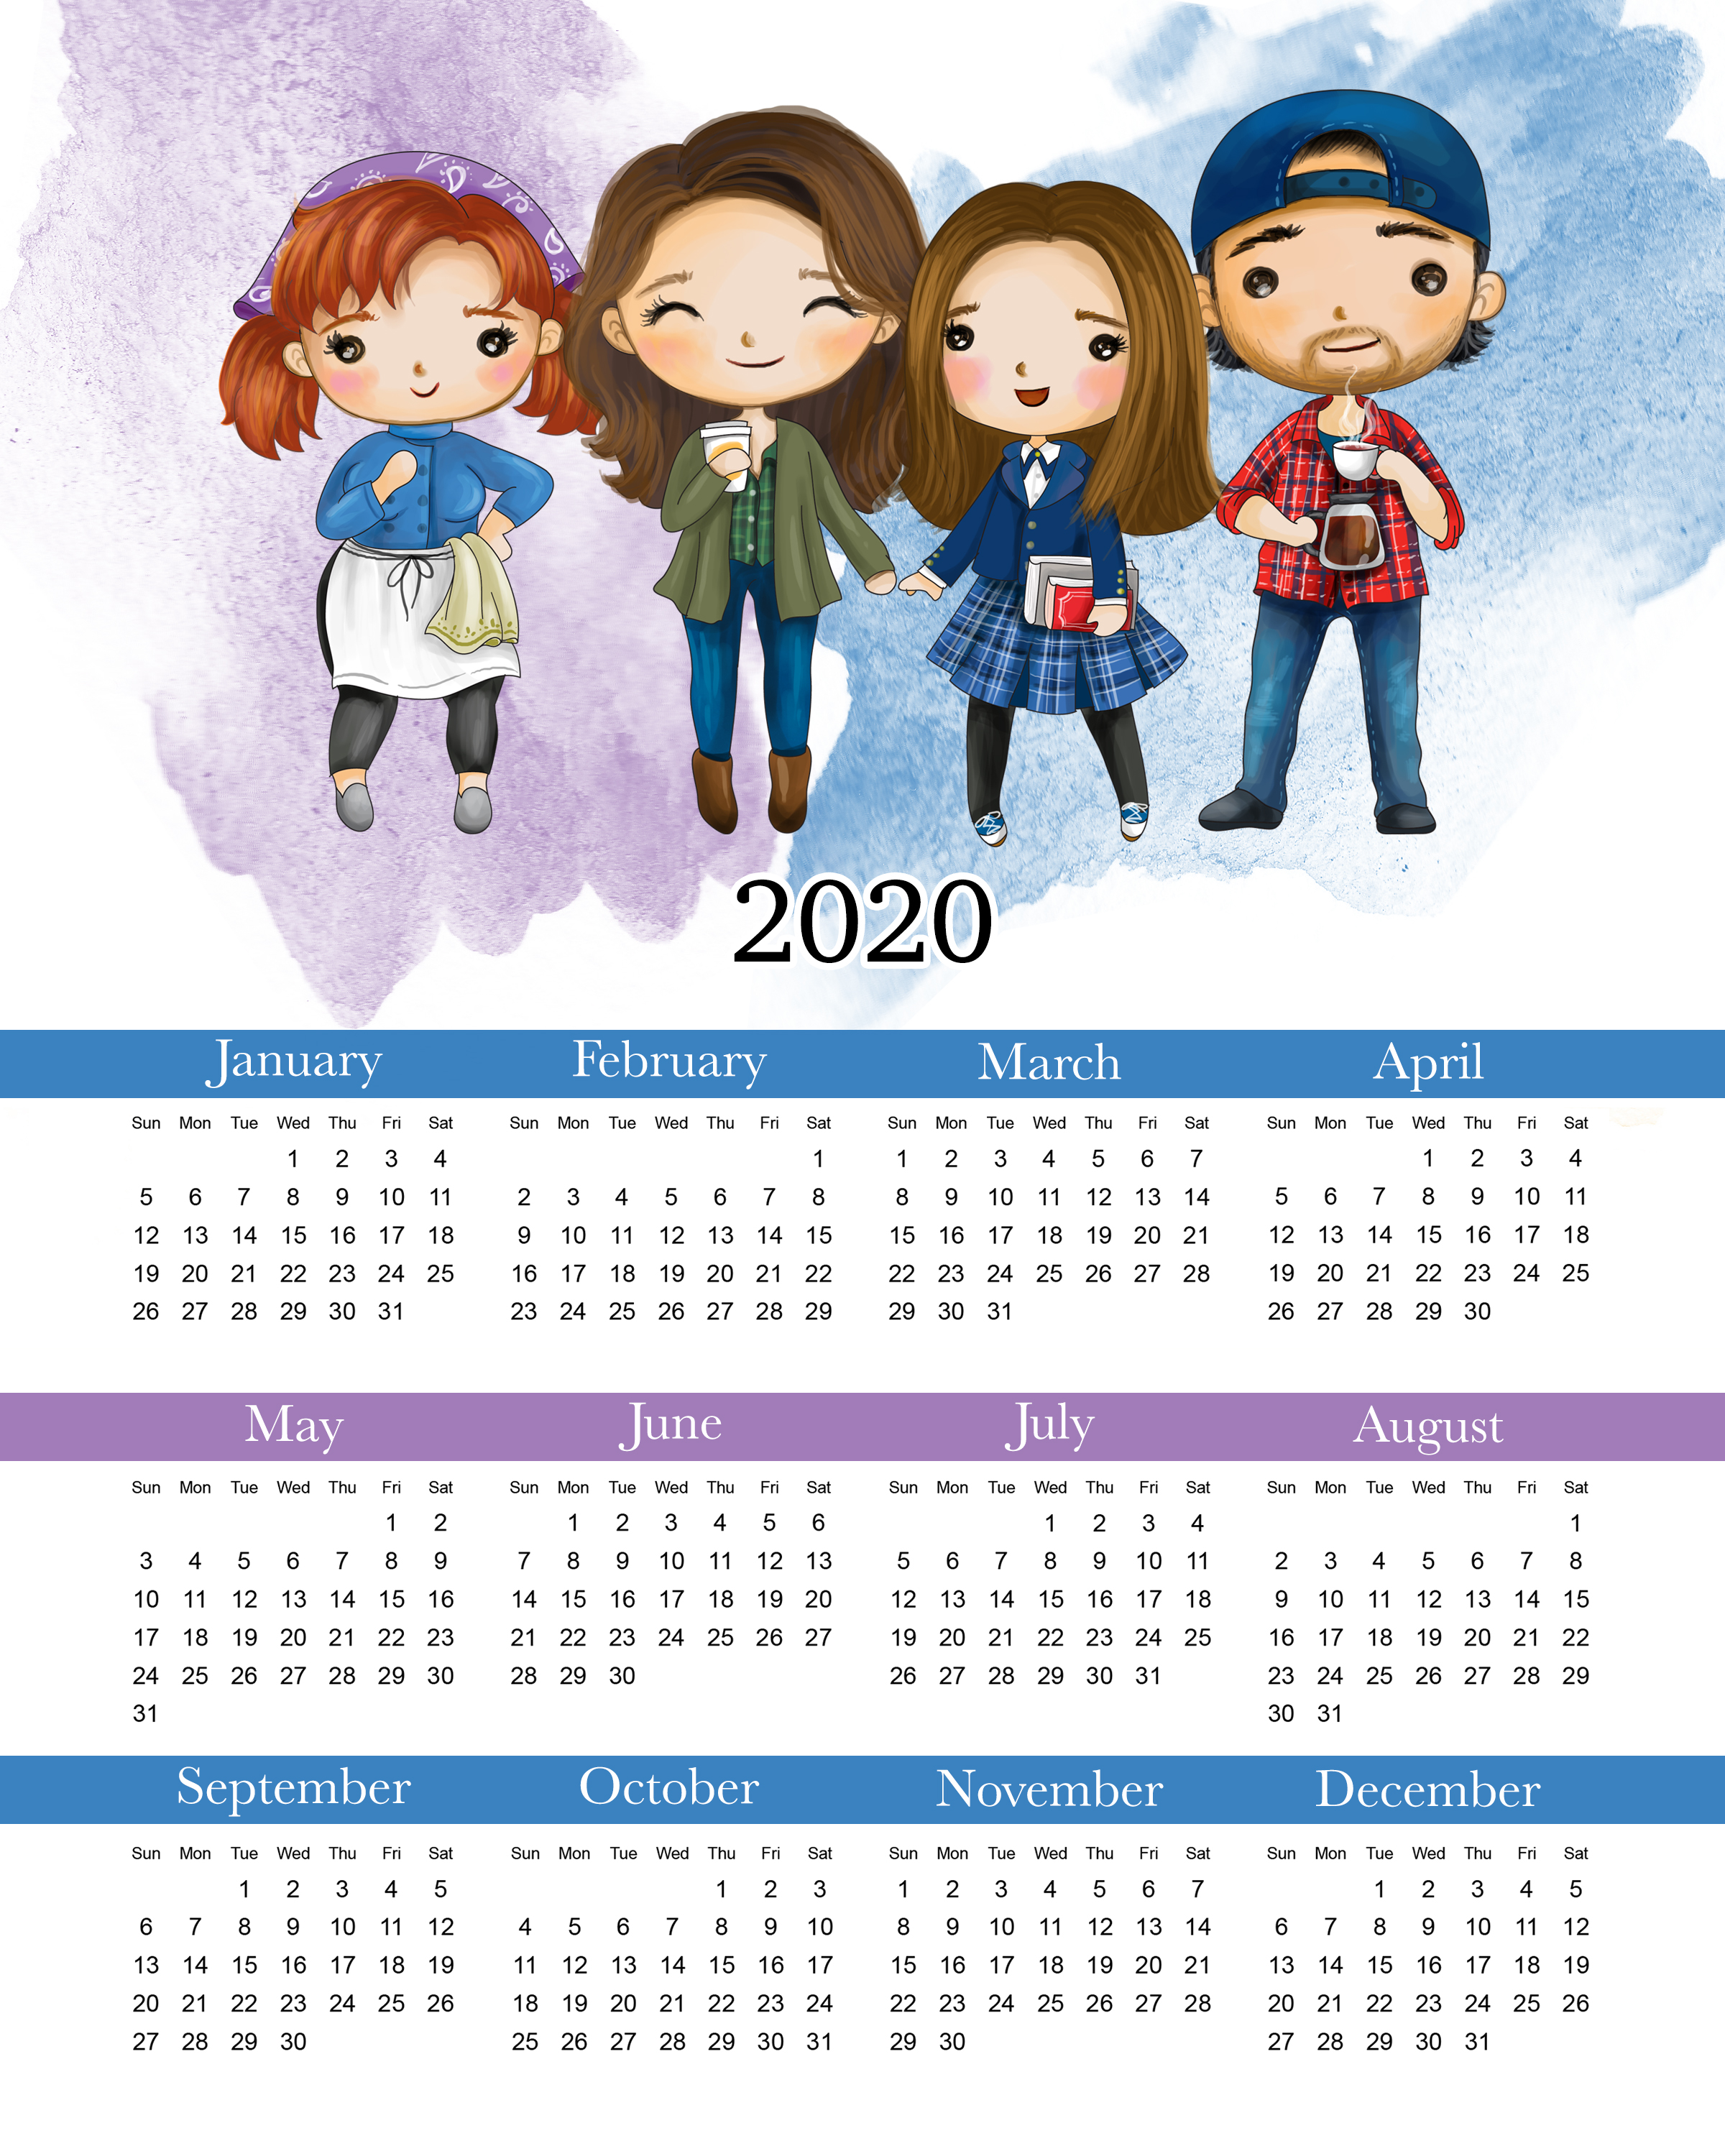 Come on over and snatch up your Free Printable 2020 Gilmore Girls Calendar that will keep you organized all year long... Guaranteed to make you smile!